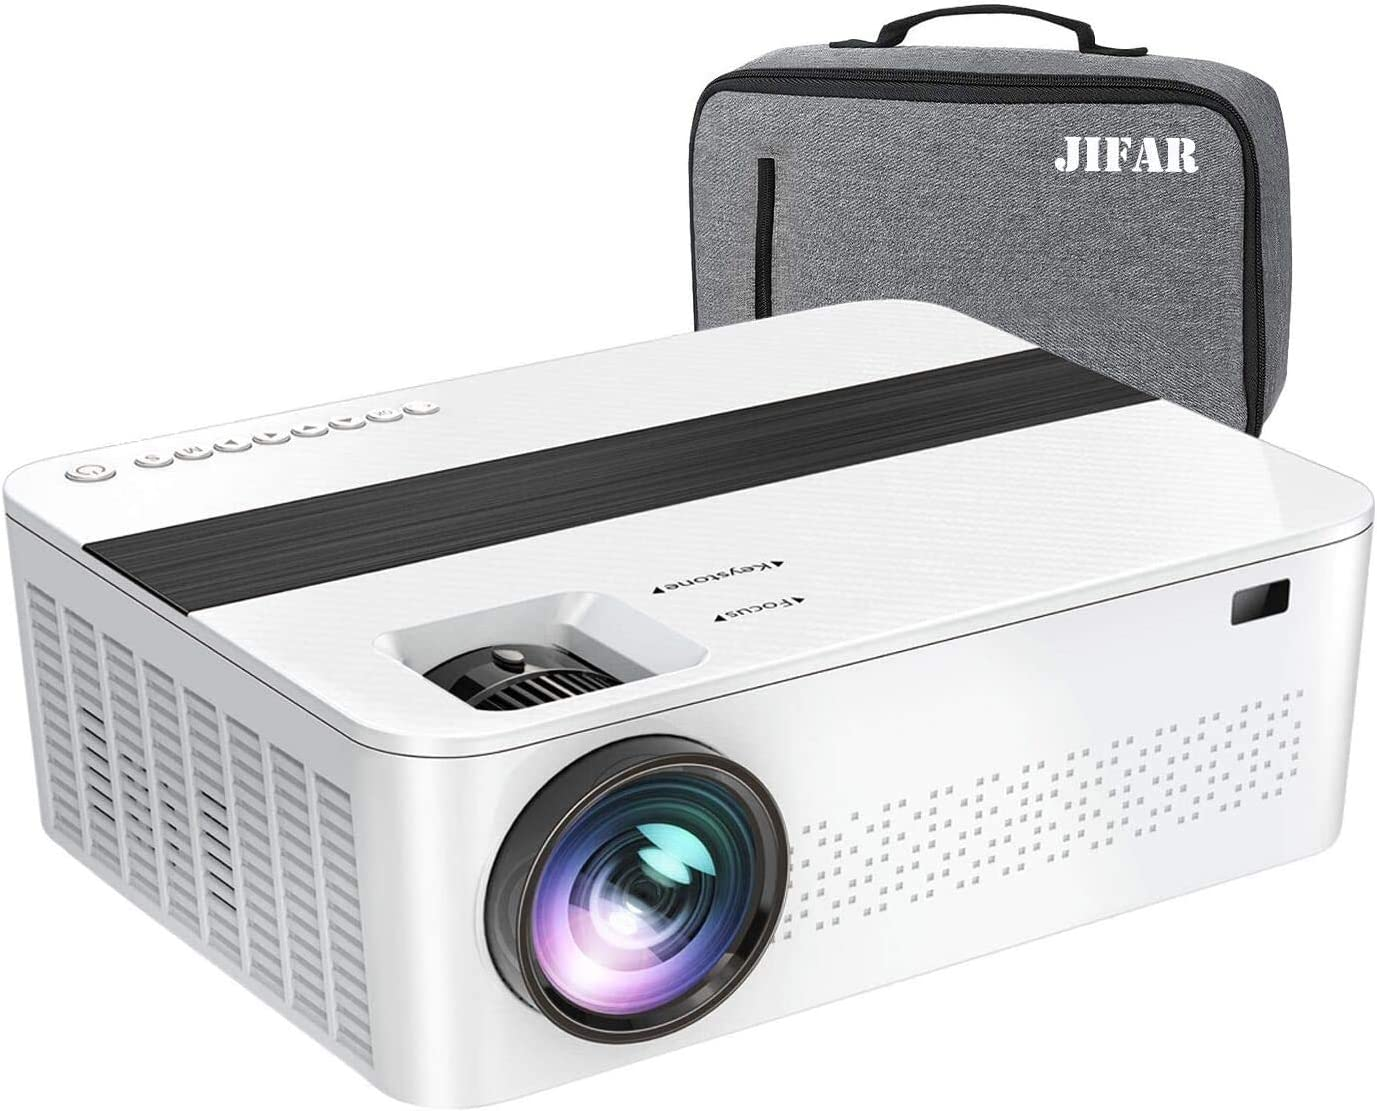 """JIFAR Native 1920x 1080P Projector 9000 Lux Upgrade Full HD Projector 4K with 450"""" Display, Christmas Projector Support 4K Dolby Video & Zoom ,Compatible with TV Stick,HDMI,VGA.USB,Smartphone,PC"""